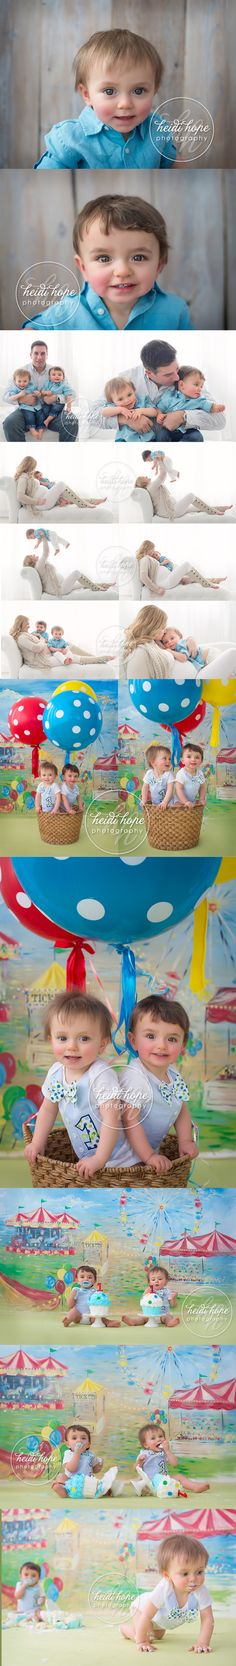 twin first birthday cakesmash with carnival backdrop by heidi hope photography